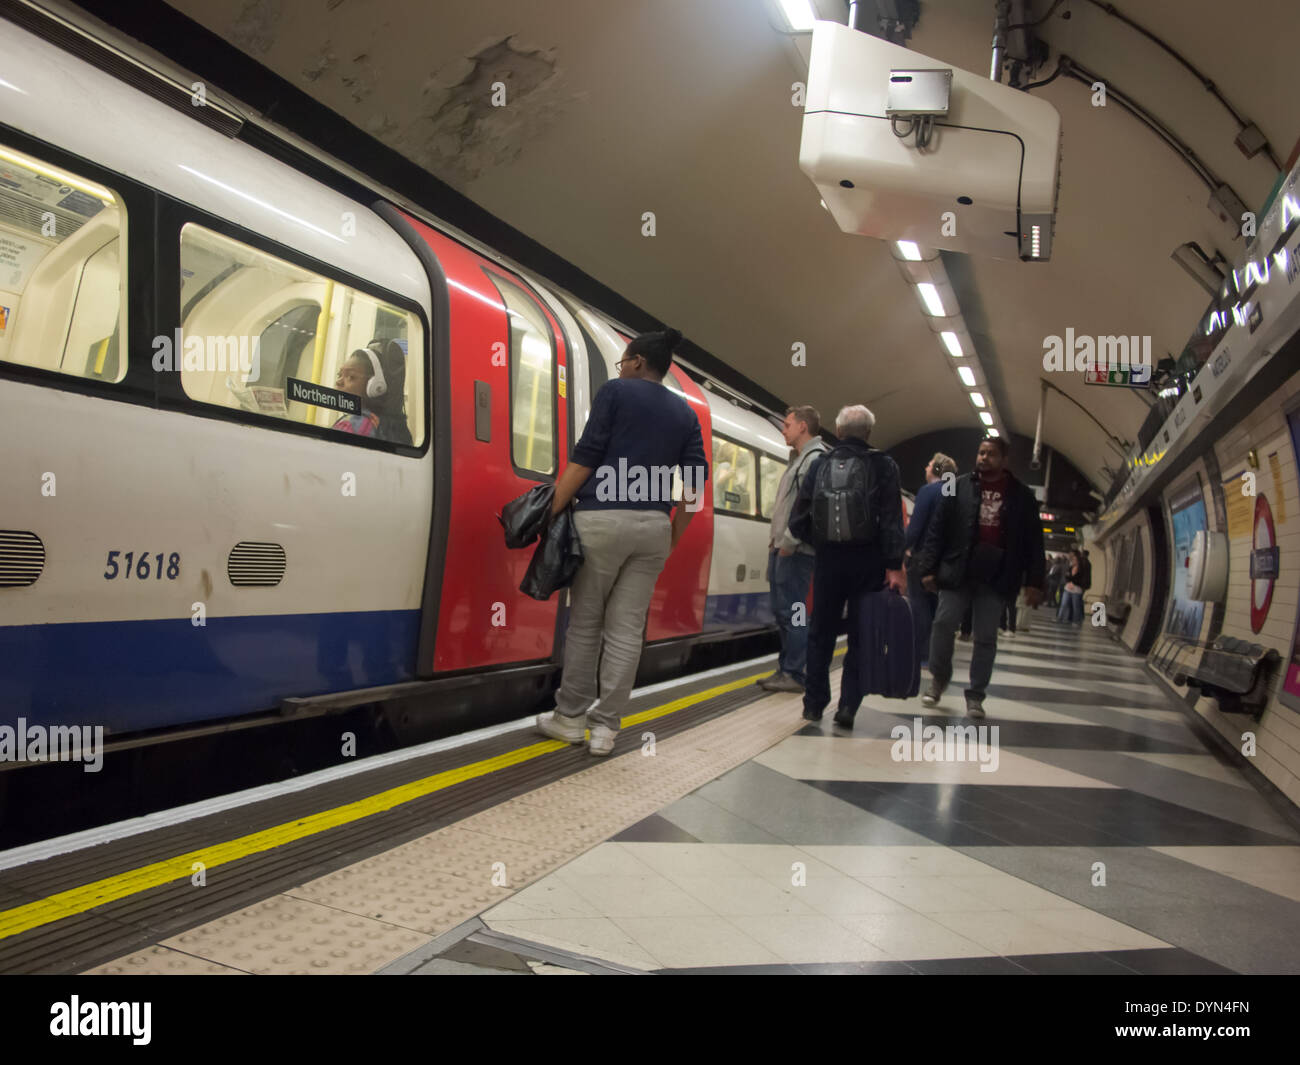 Passengers waiting for the doors to open on a London Underground Northern line train at Waterloo station. - Stock Image